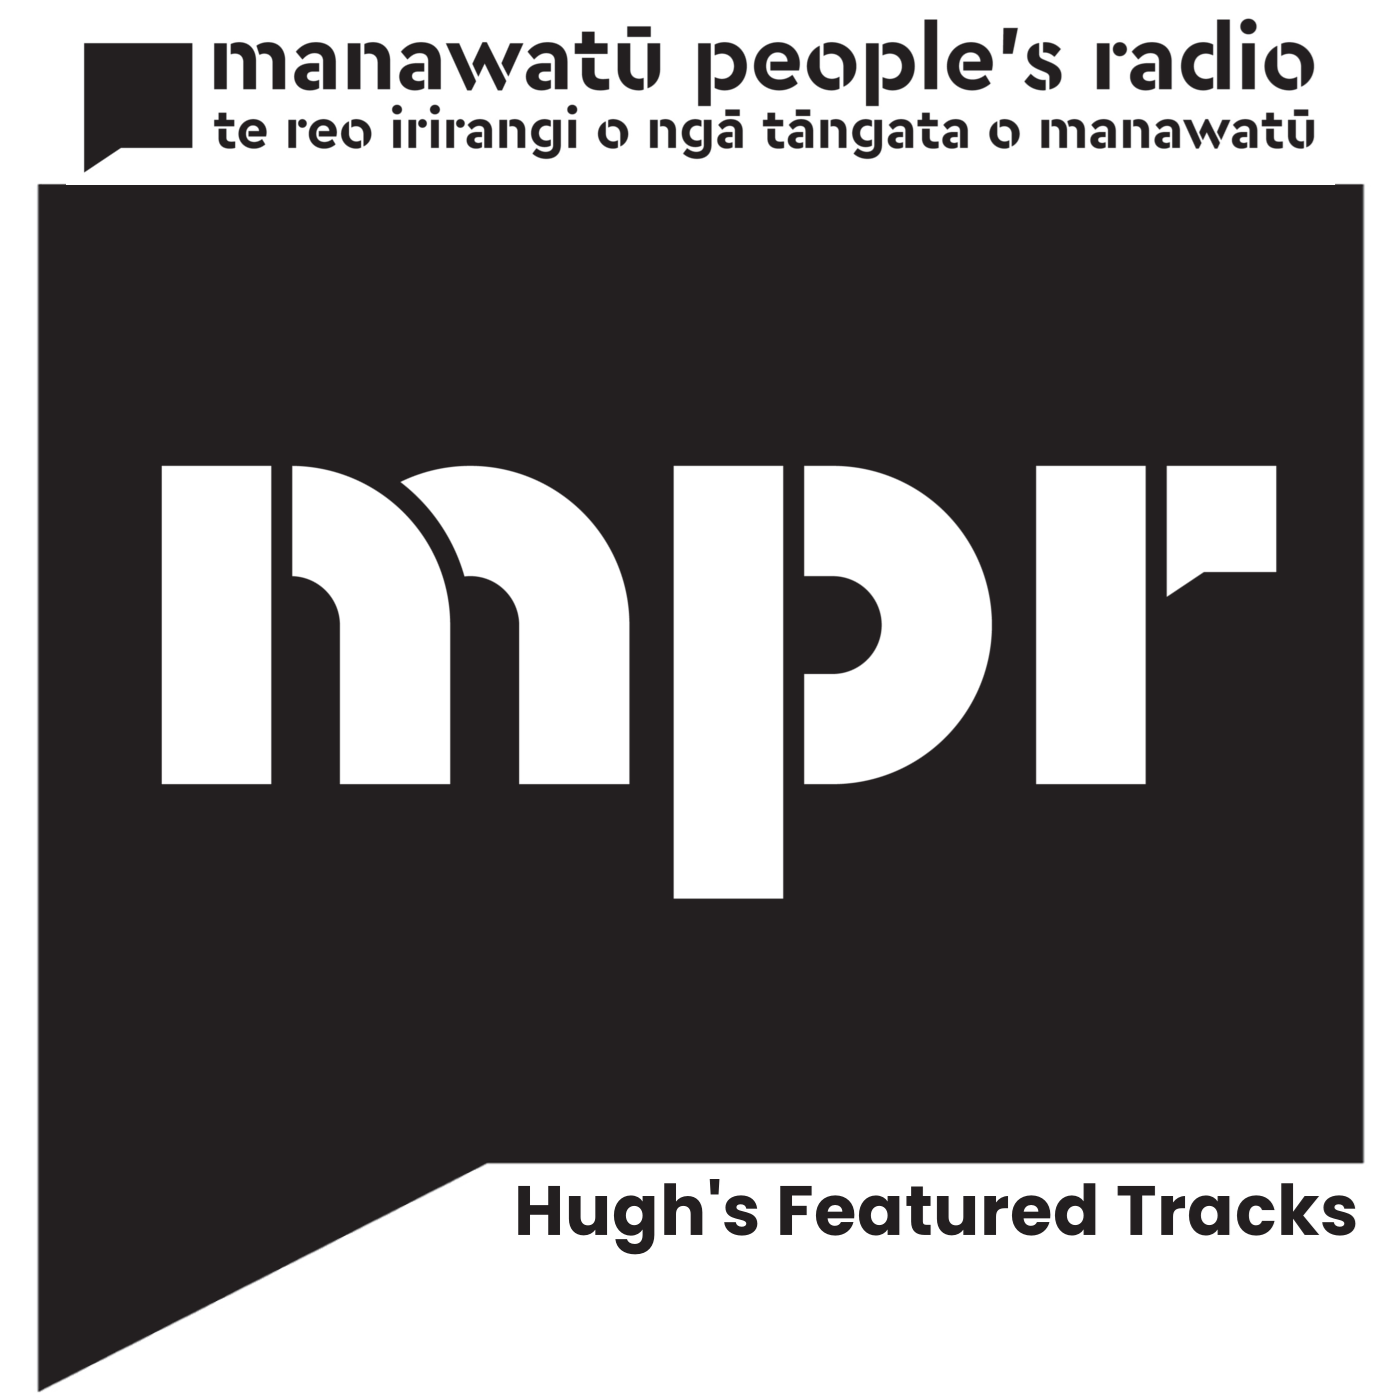 Hugh's Featured Tracks